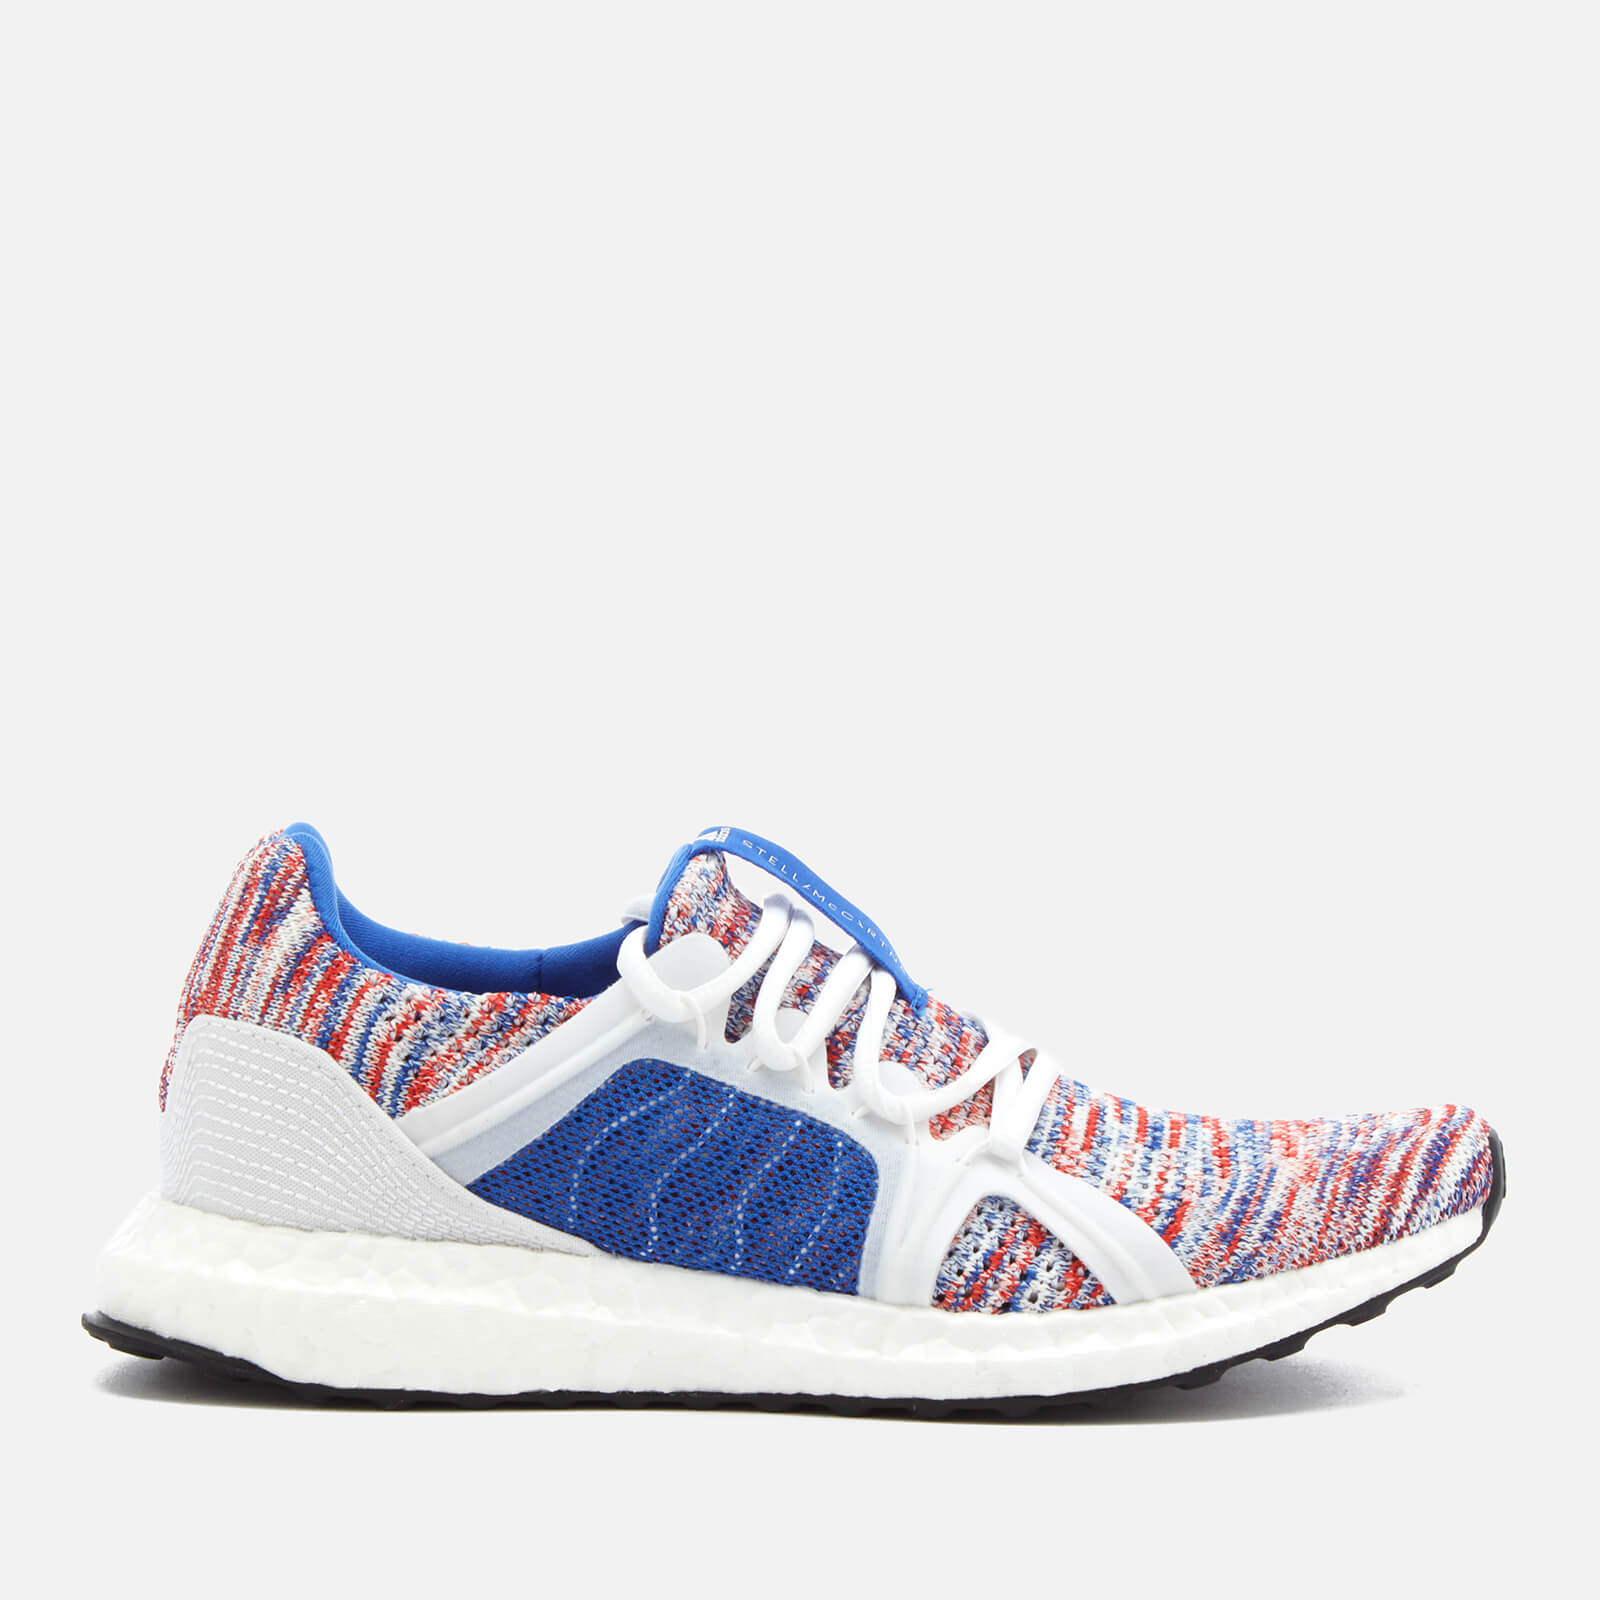 91de262ac43a7 adidas by Stella McCartney Women s Ultraboost Parley Trainers - Hi Res  Blue Core White Dark Caliso - Free UK Delivery over £50